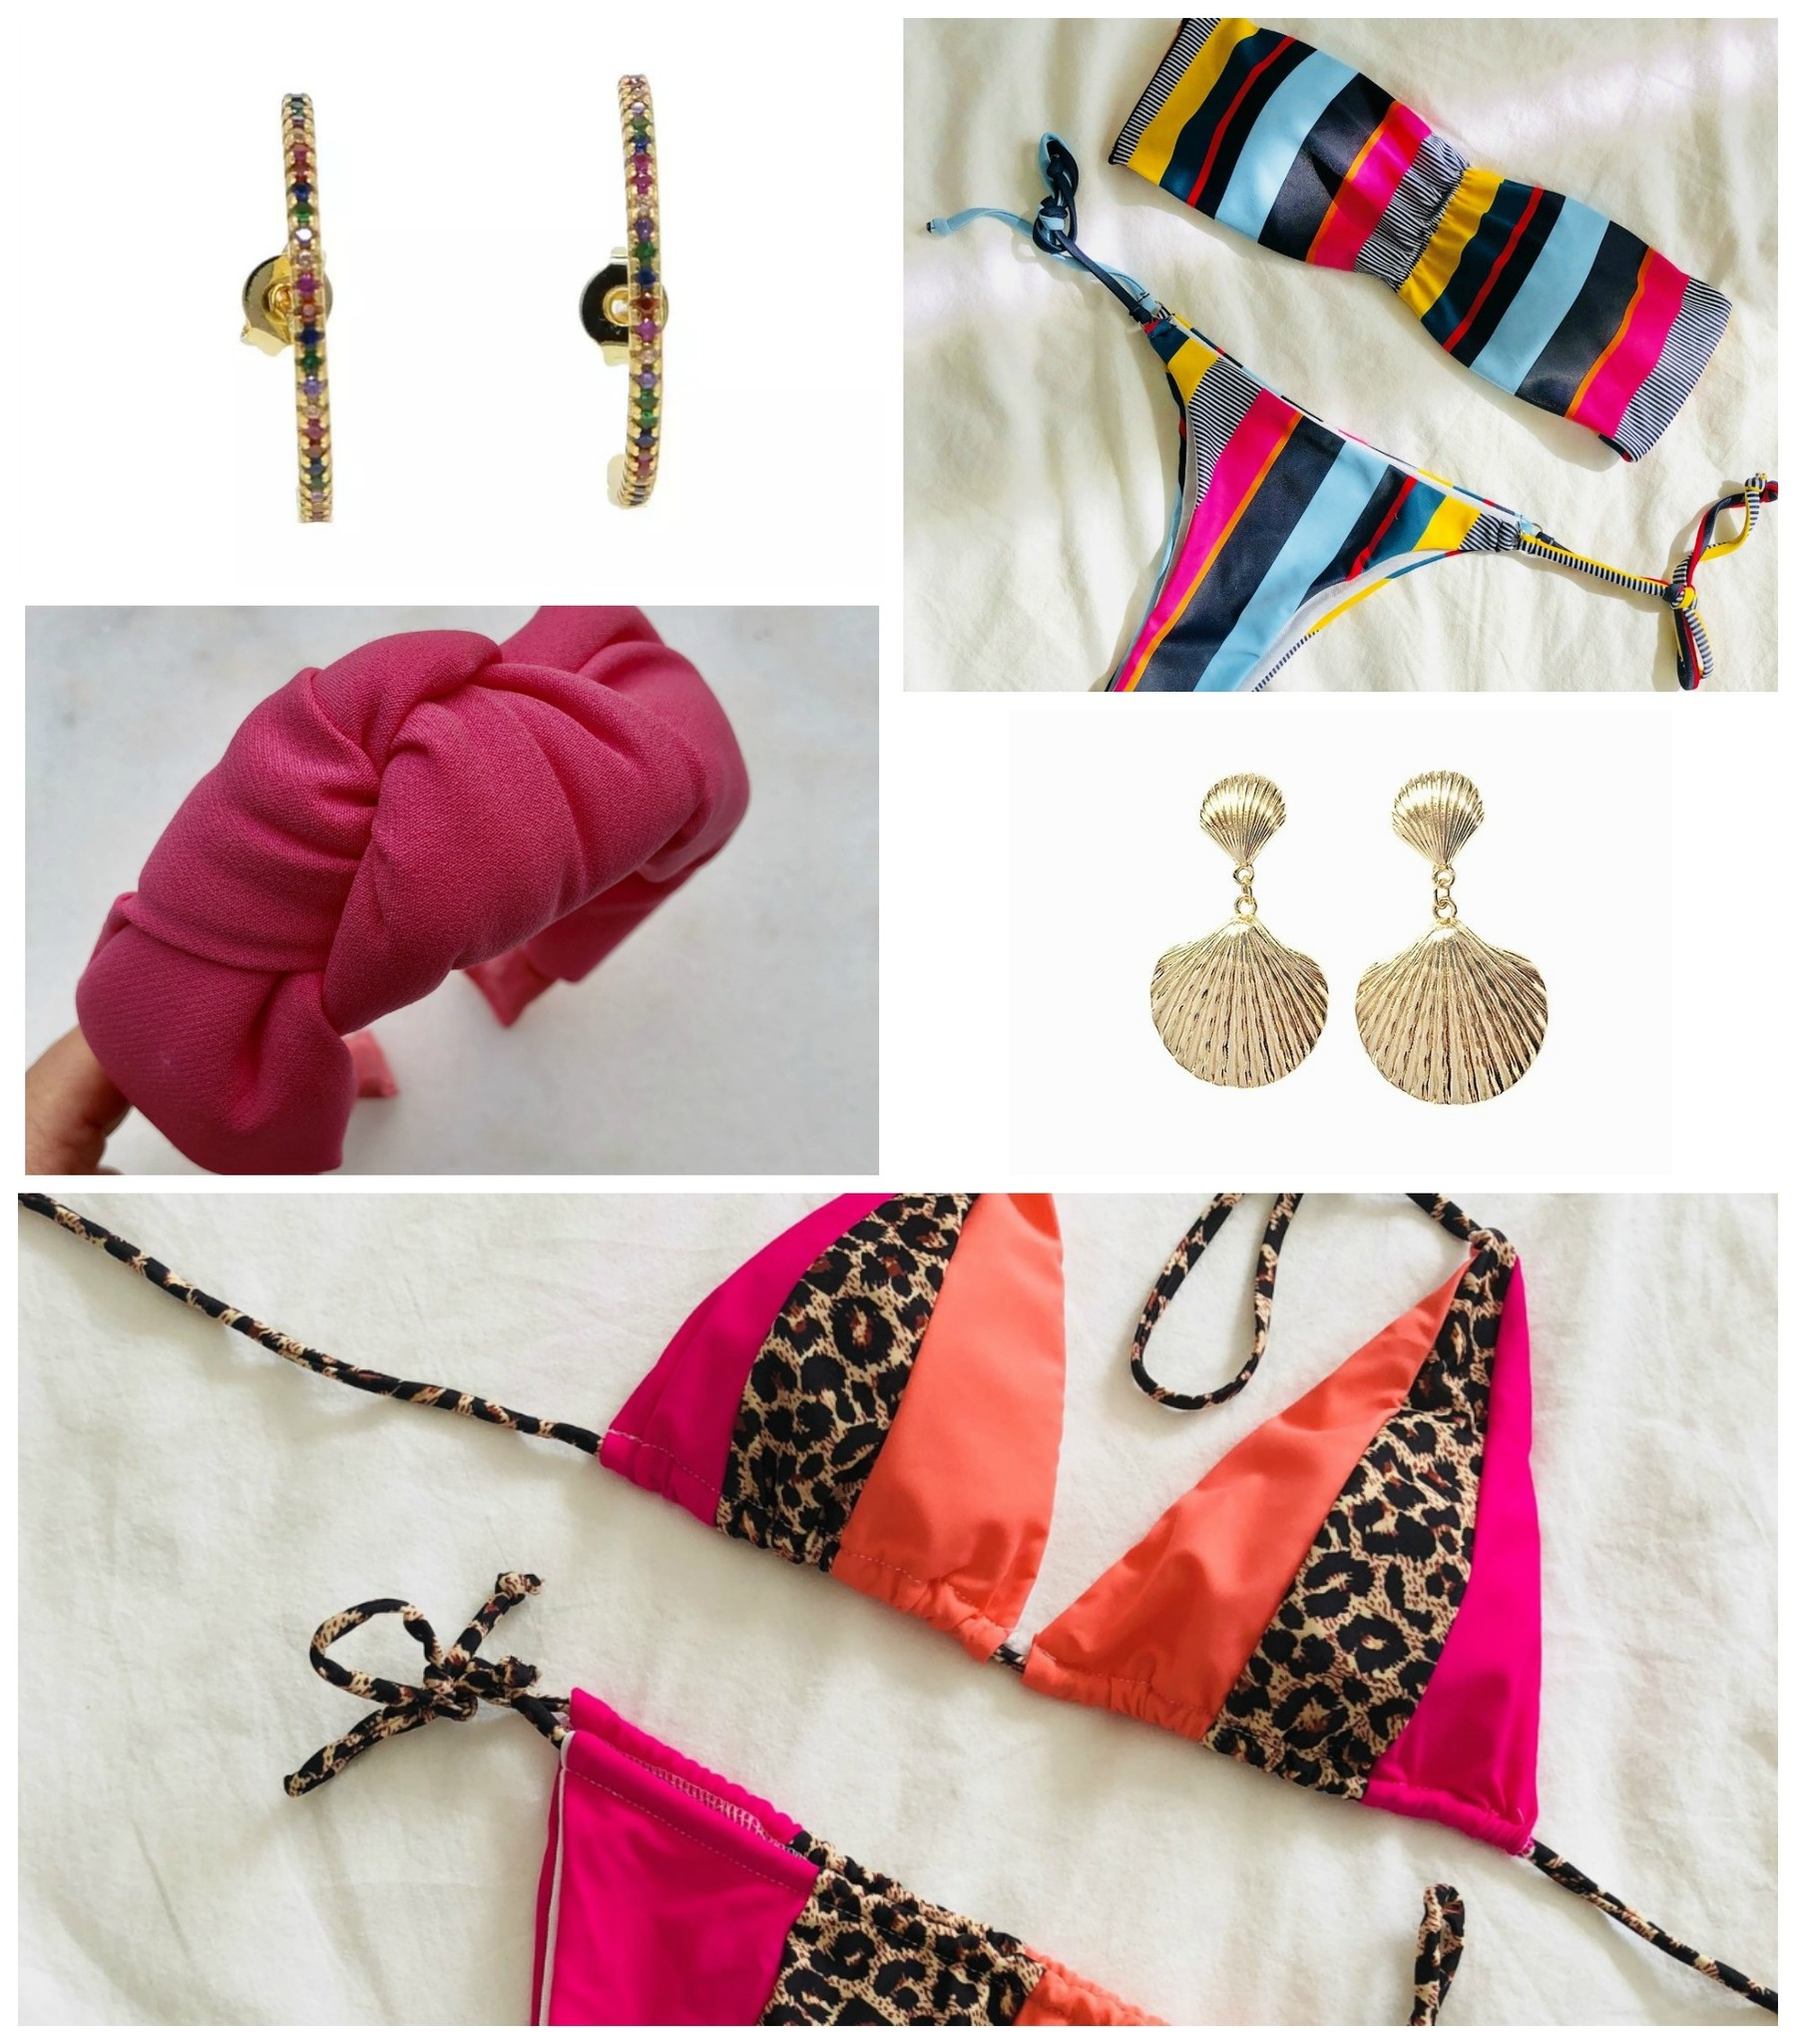 shop zomer trends 2019 musthaves sieraden bikinis accessoires